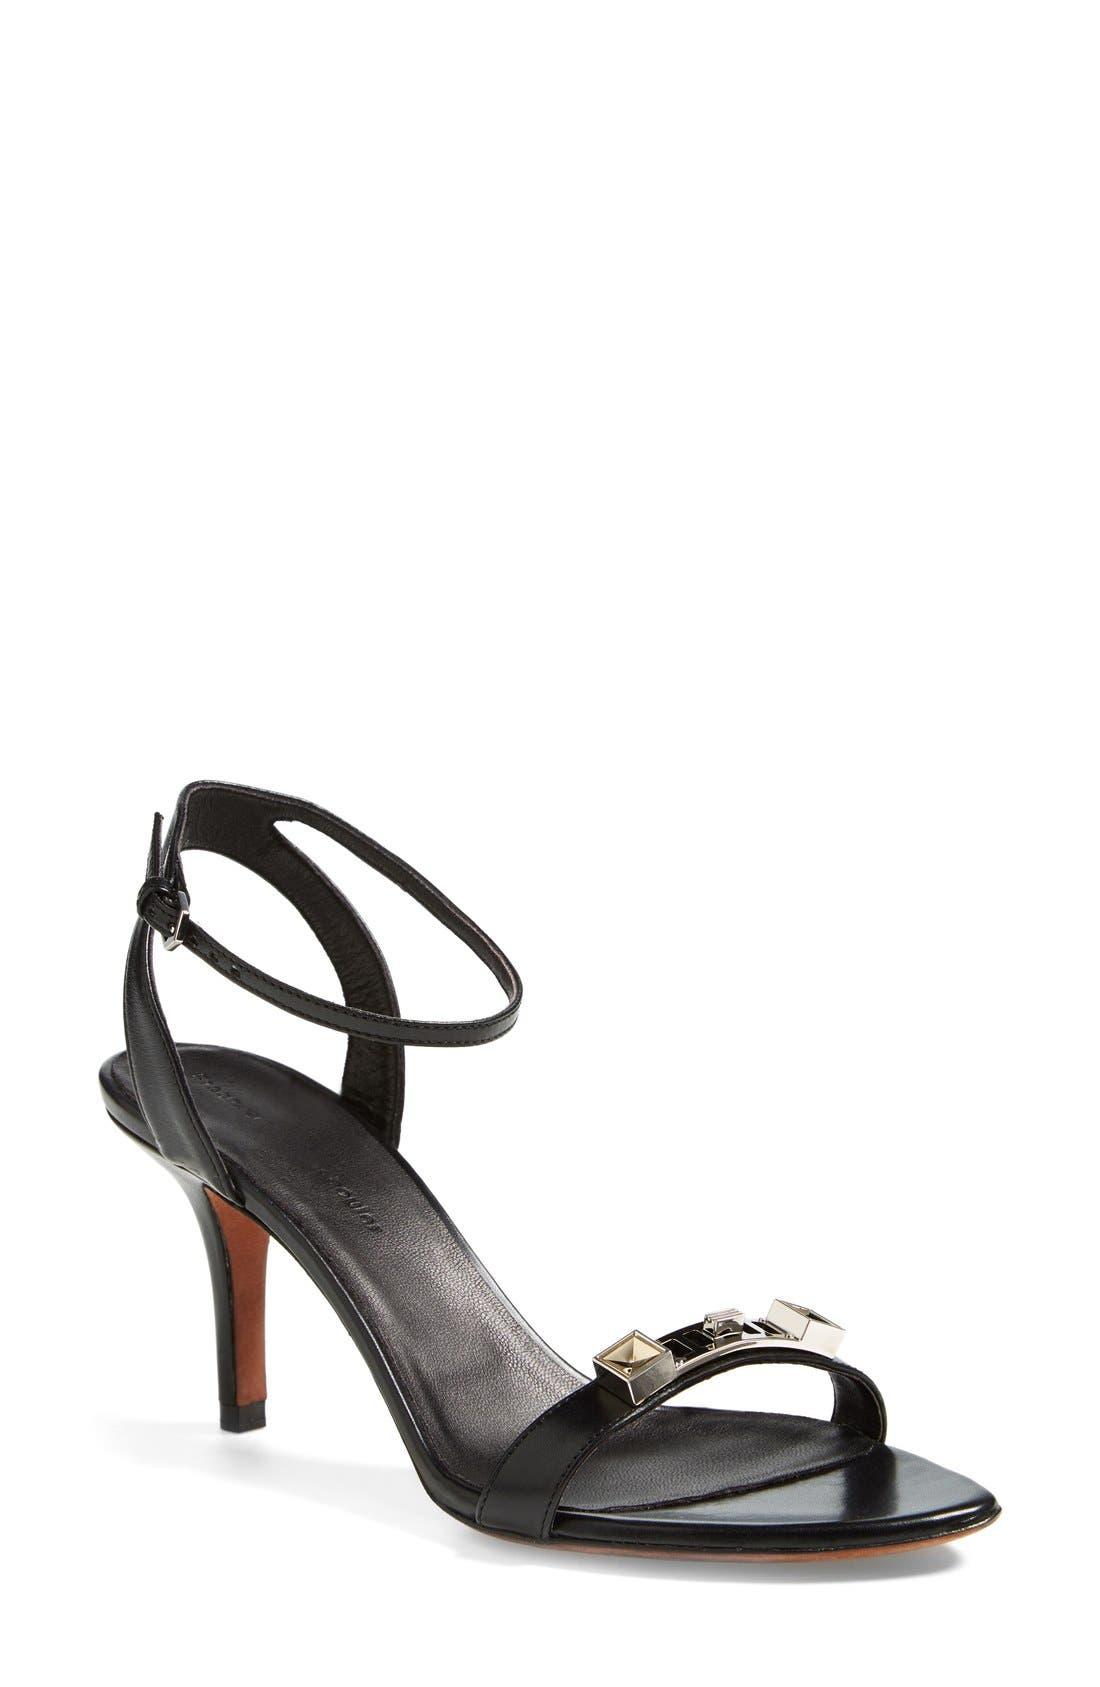 Main Image - Proenza Schouler Leather Ankle Strap Sandal